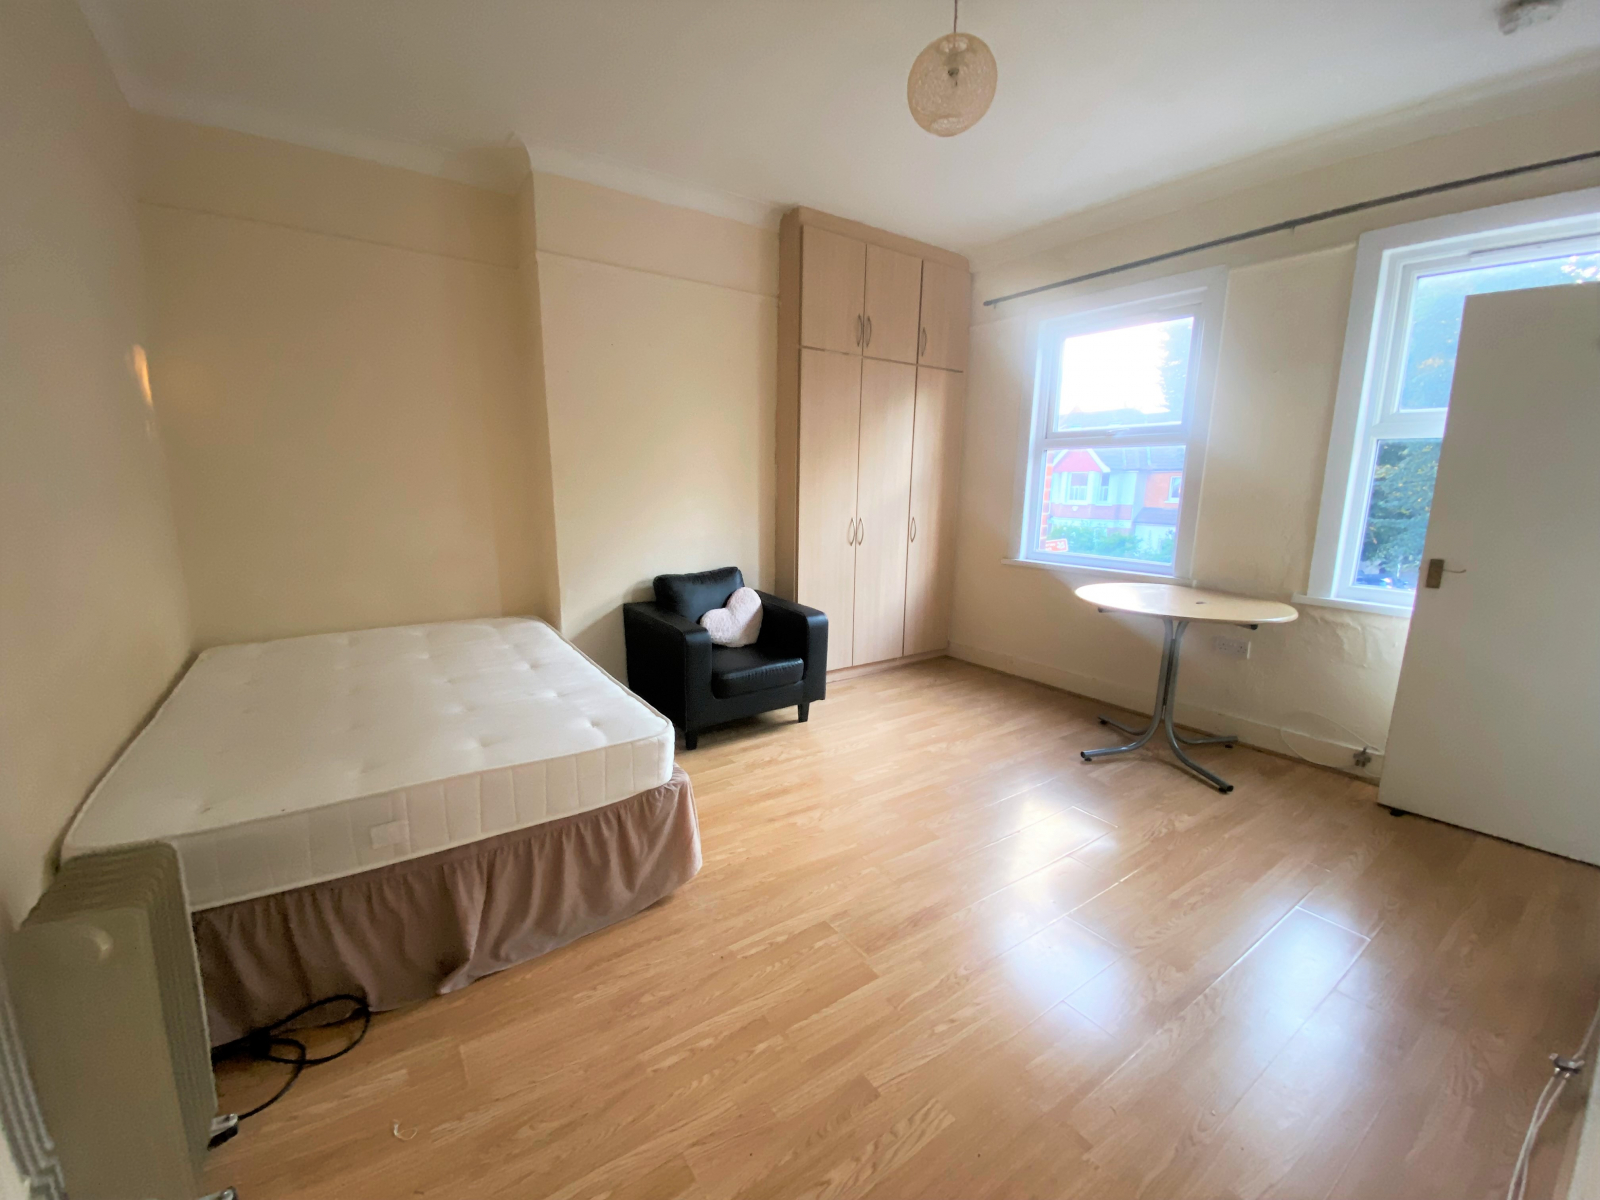 Studio flat to rent in Thornbury road, Osterley, Middlesex  - Property Image 1